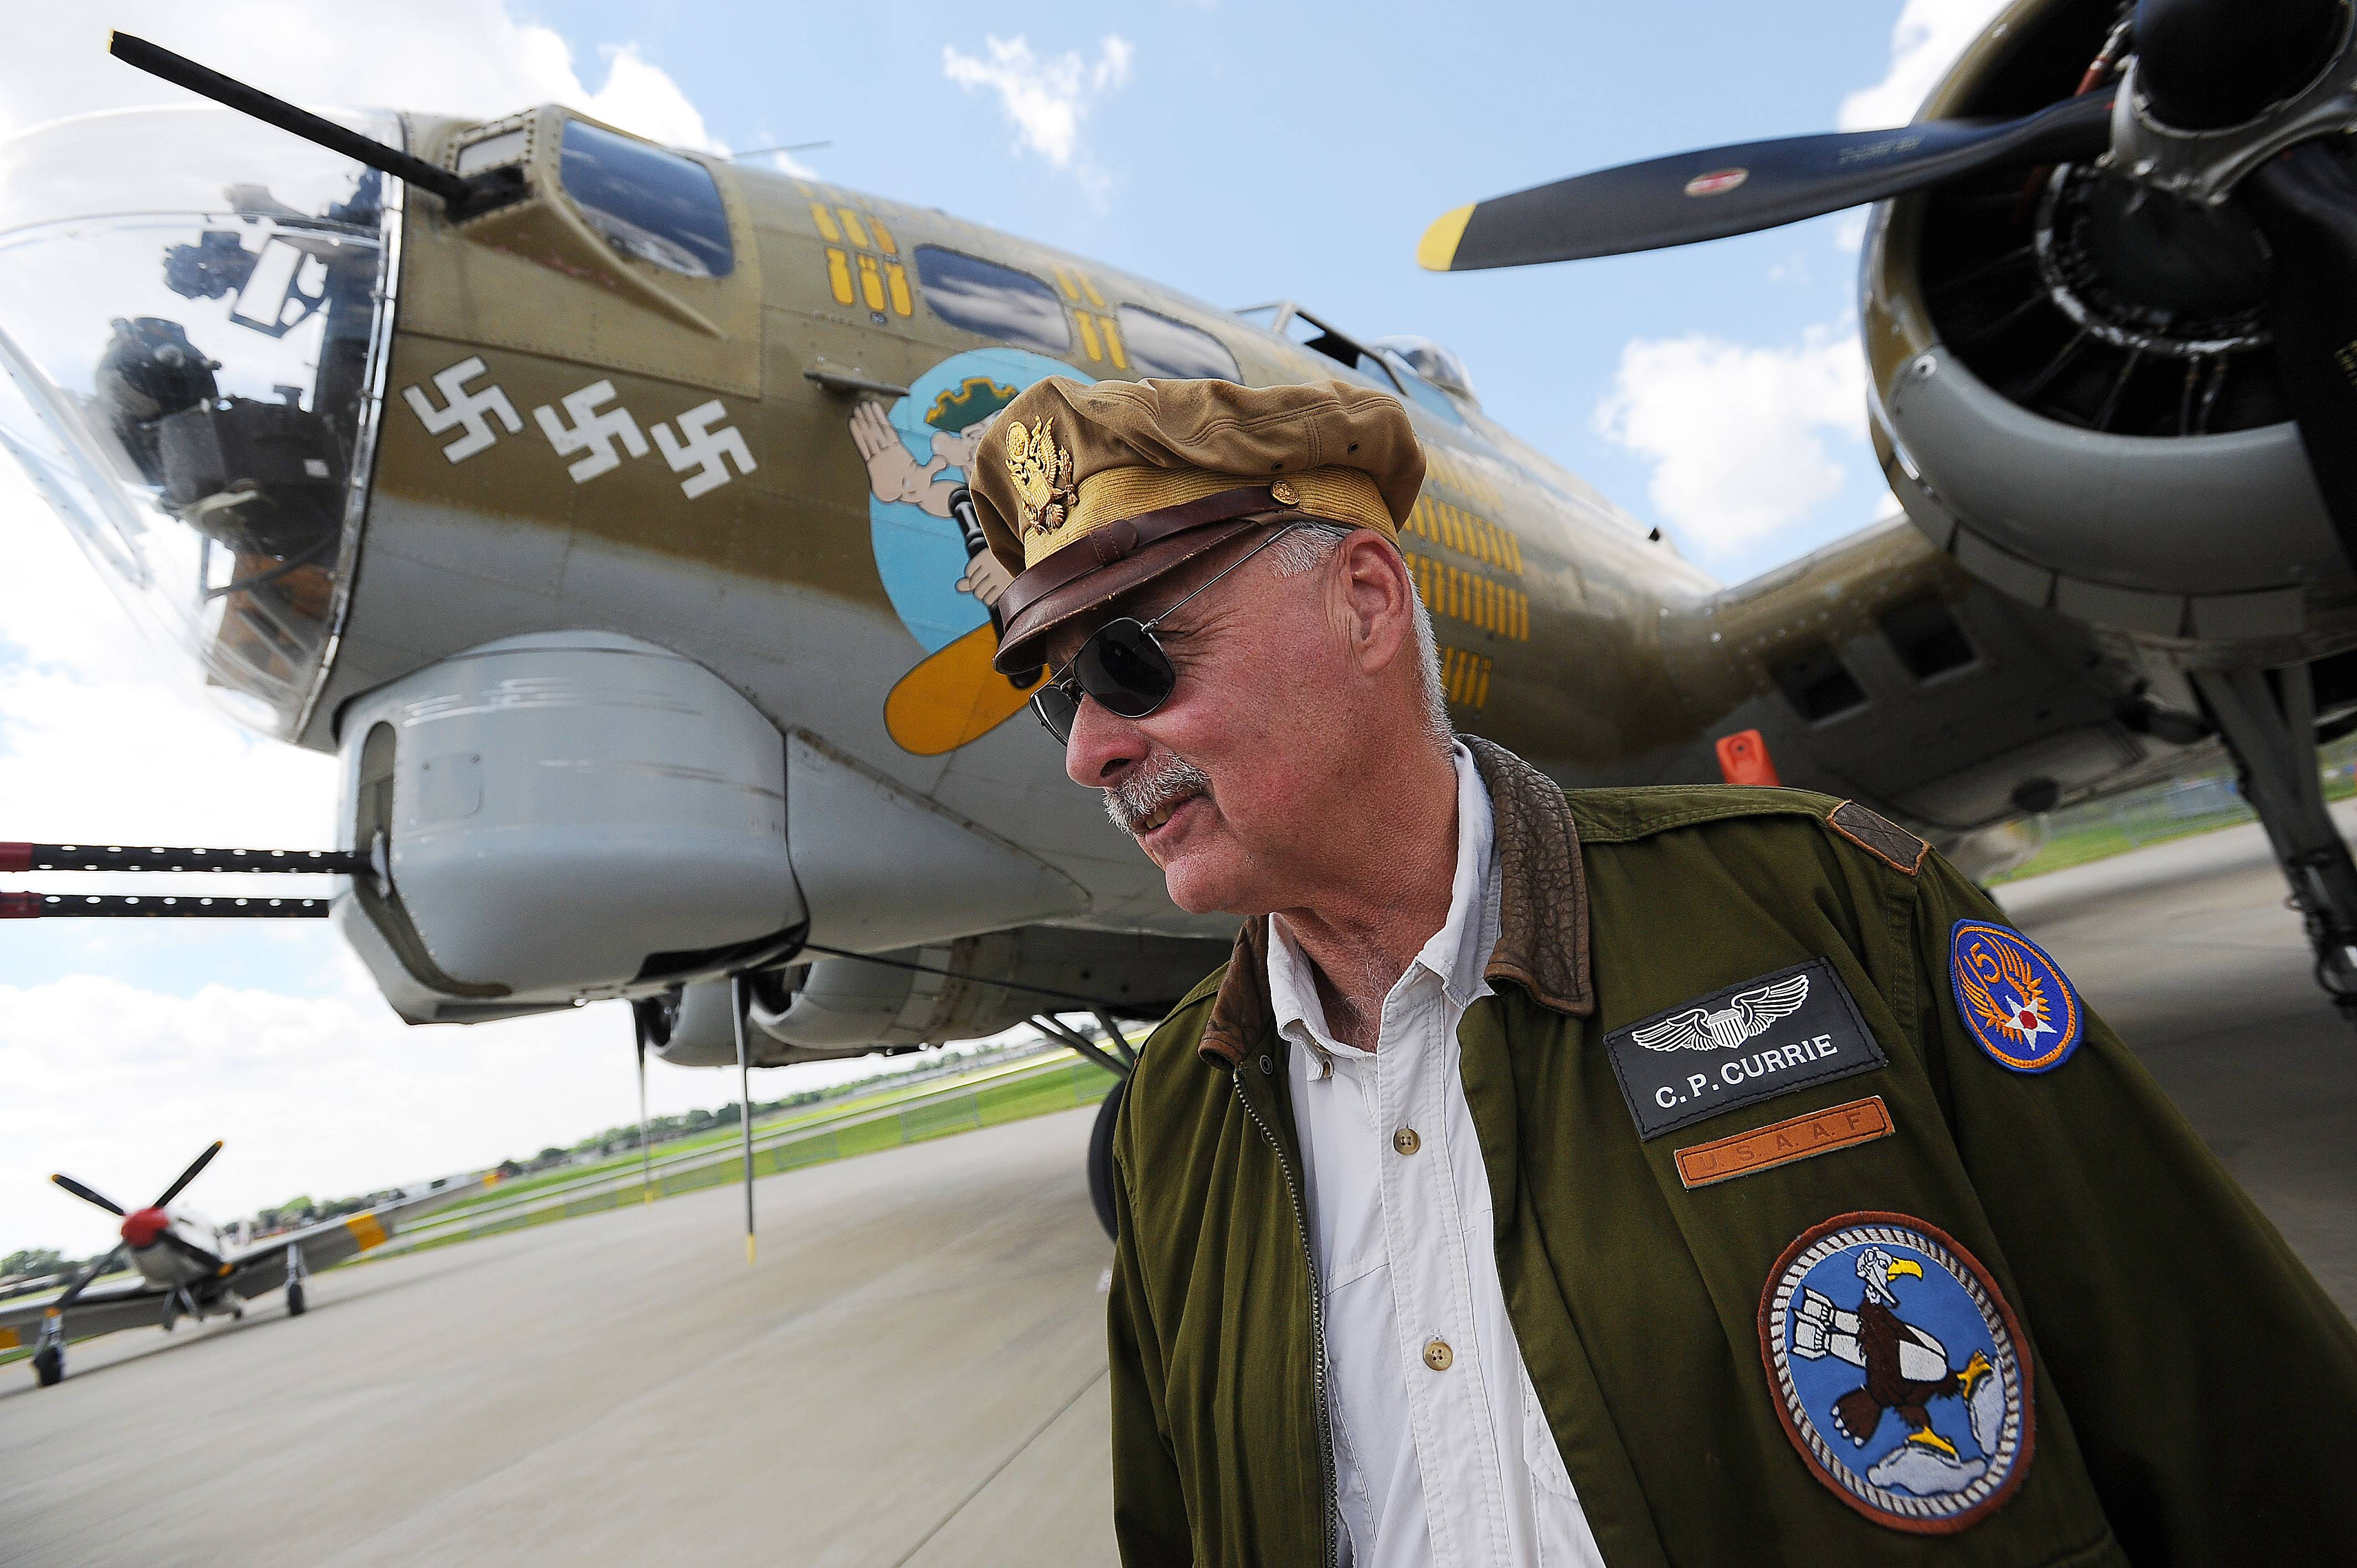 In his dad's flight jacket and hat, Chuck Currie of Prospect Heights prepares to take a spin in a vintage B-17 Flying Fortress -- giving him some idea of what it was like for his father during World War II.